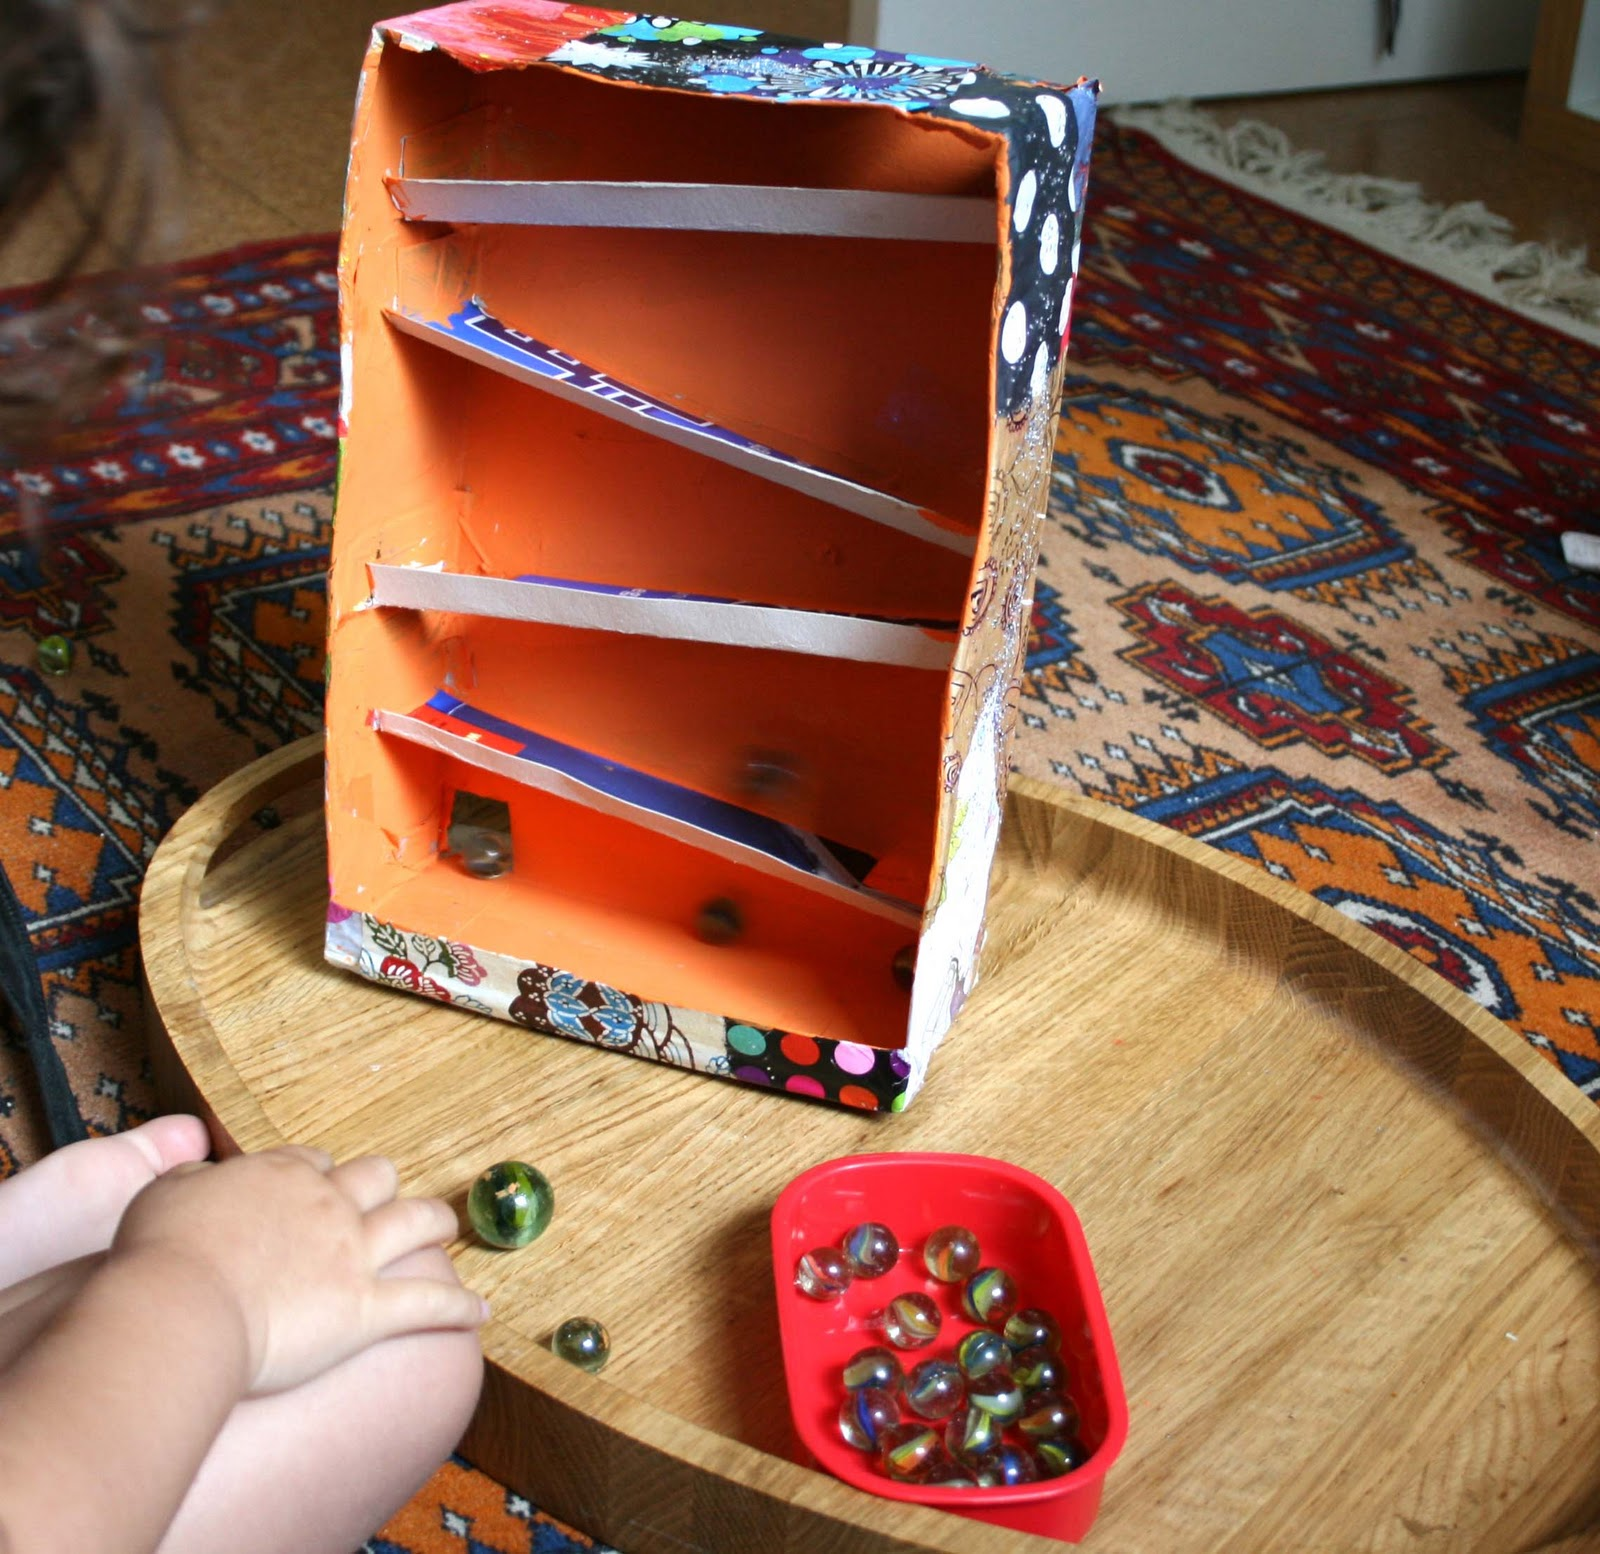 a year above the shop: Cereal box marble run